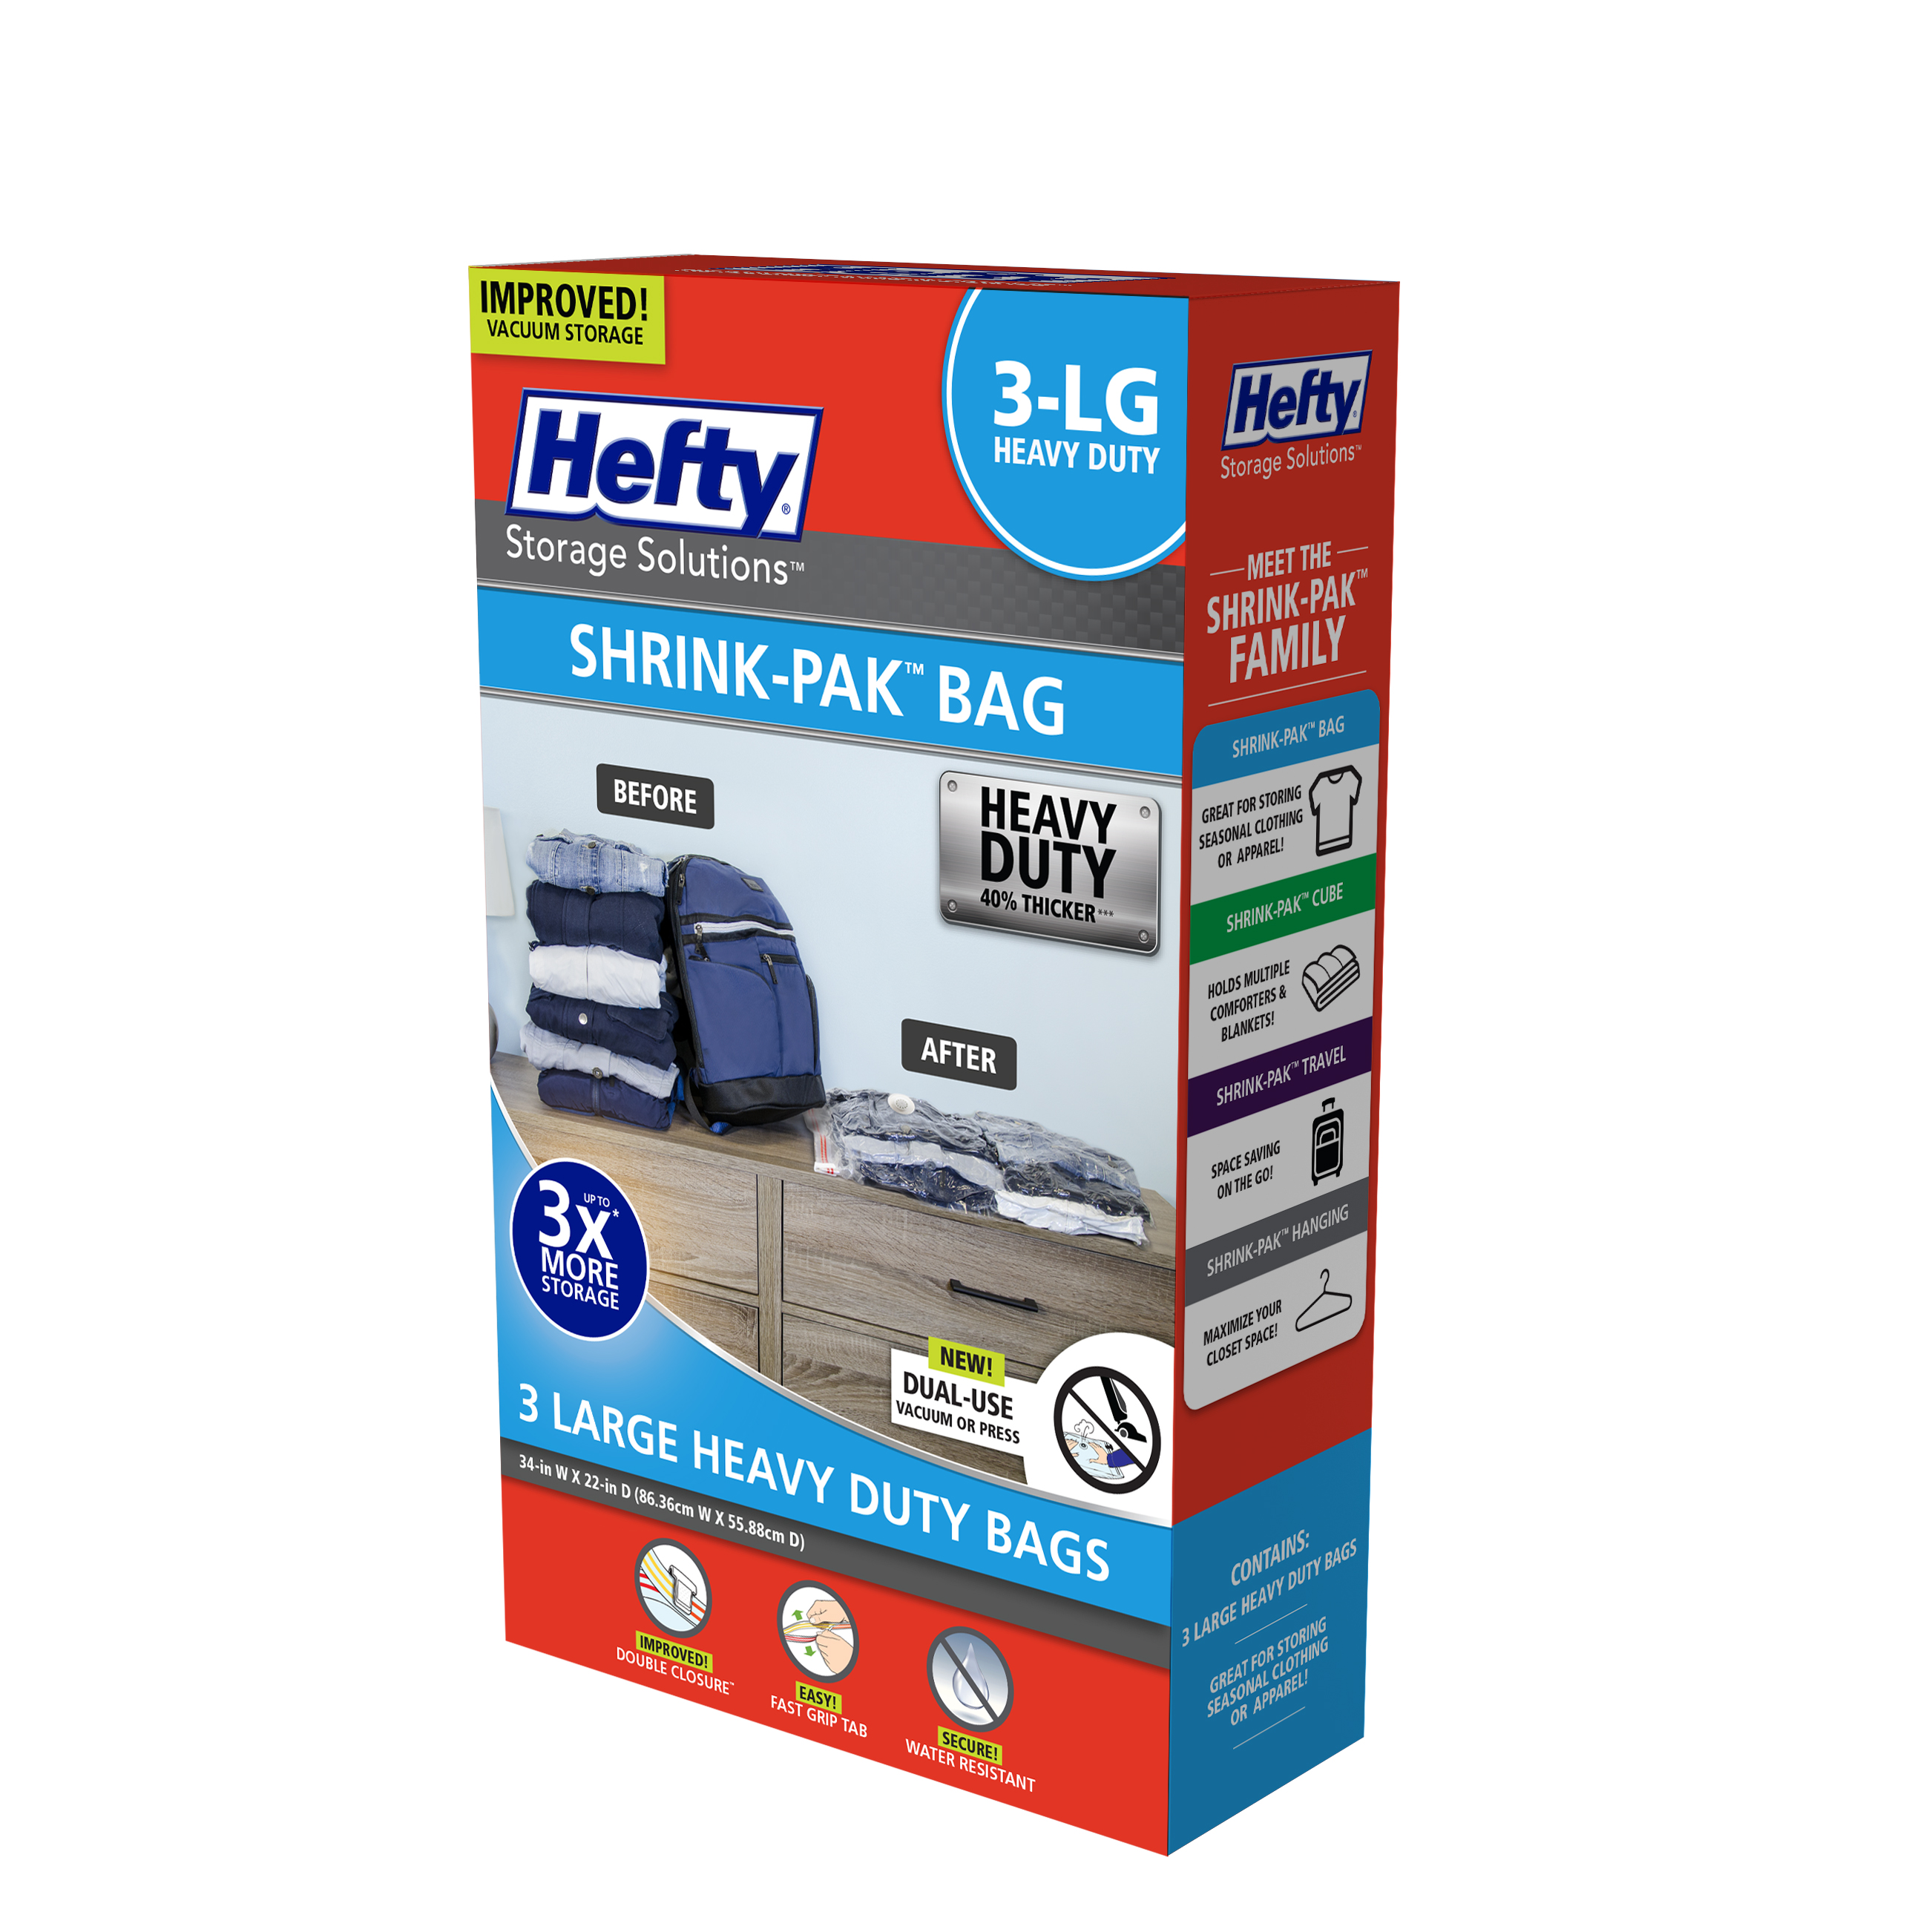 Hefty SHRINK-PAK 3 Large Heavy Duty Bags